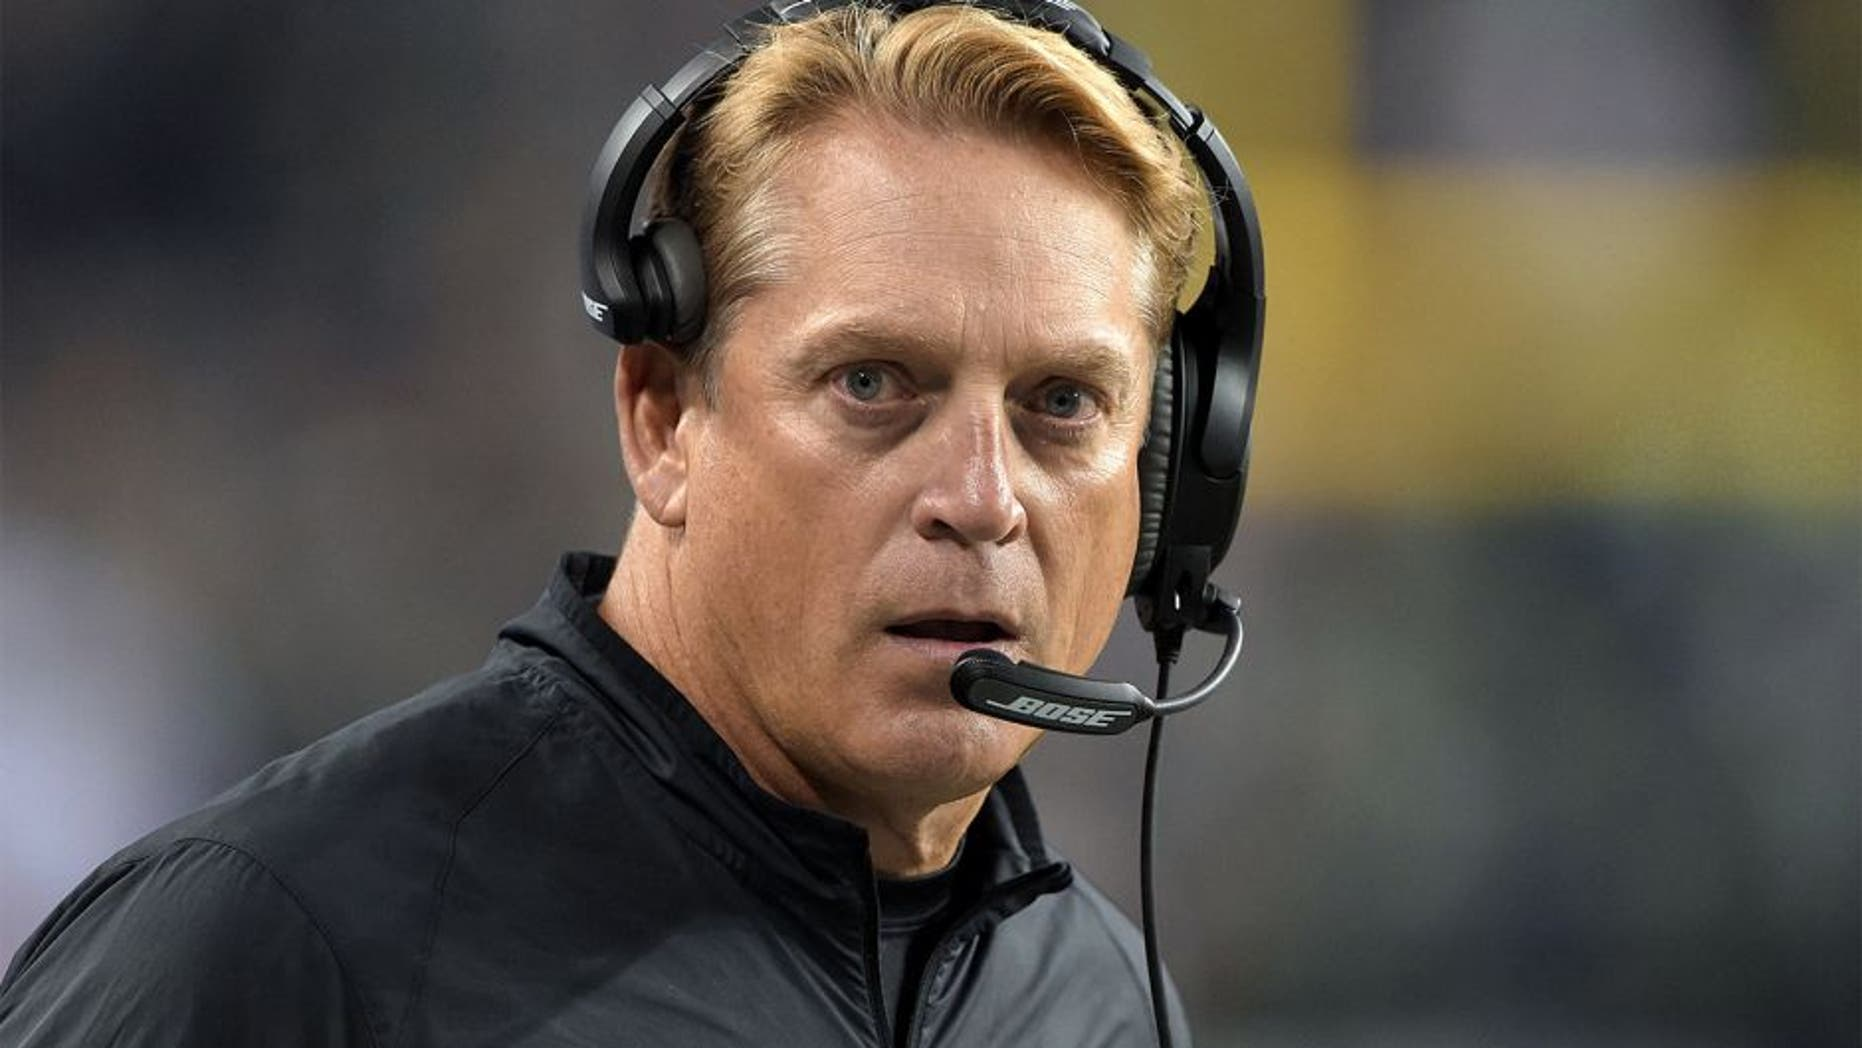 Sep 3, 2015; Seattle, WA, USA; Oakland Raiders coach Jack Del Rio reacts during the preseason game against the Seattle Seahawks at CenturyLink Field. Mandatory Credit: Kirby Lee-USA TODAY Sports